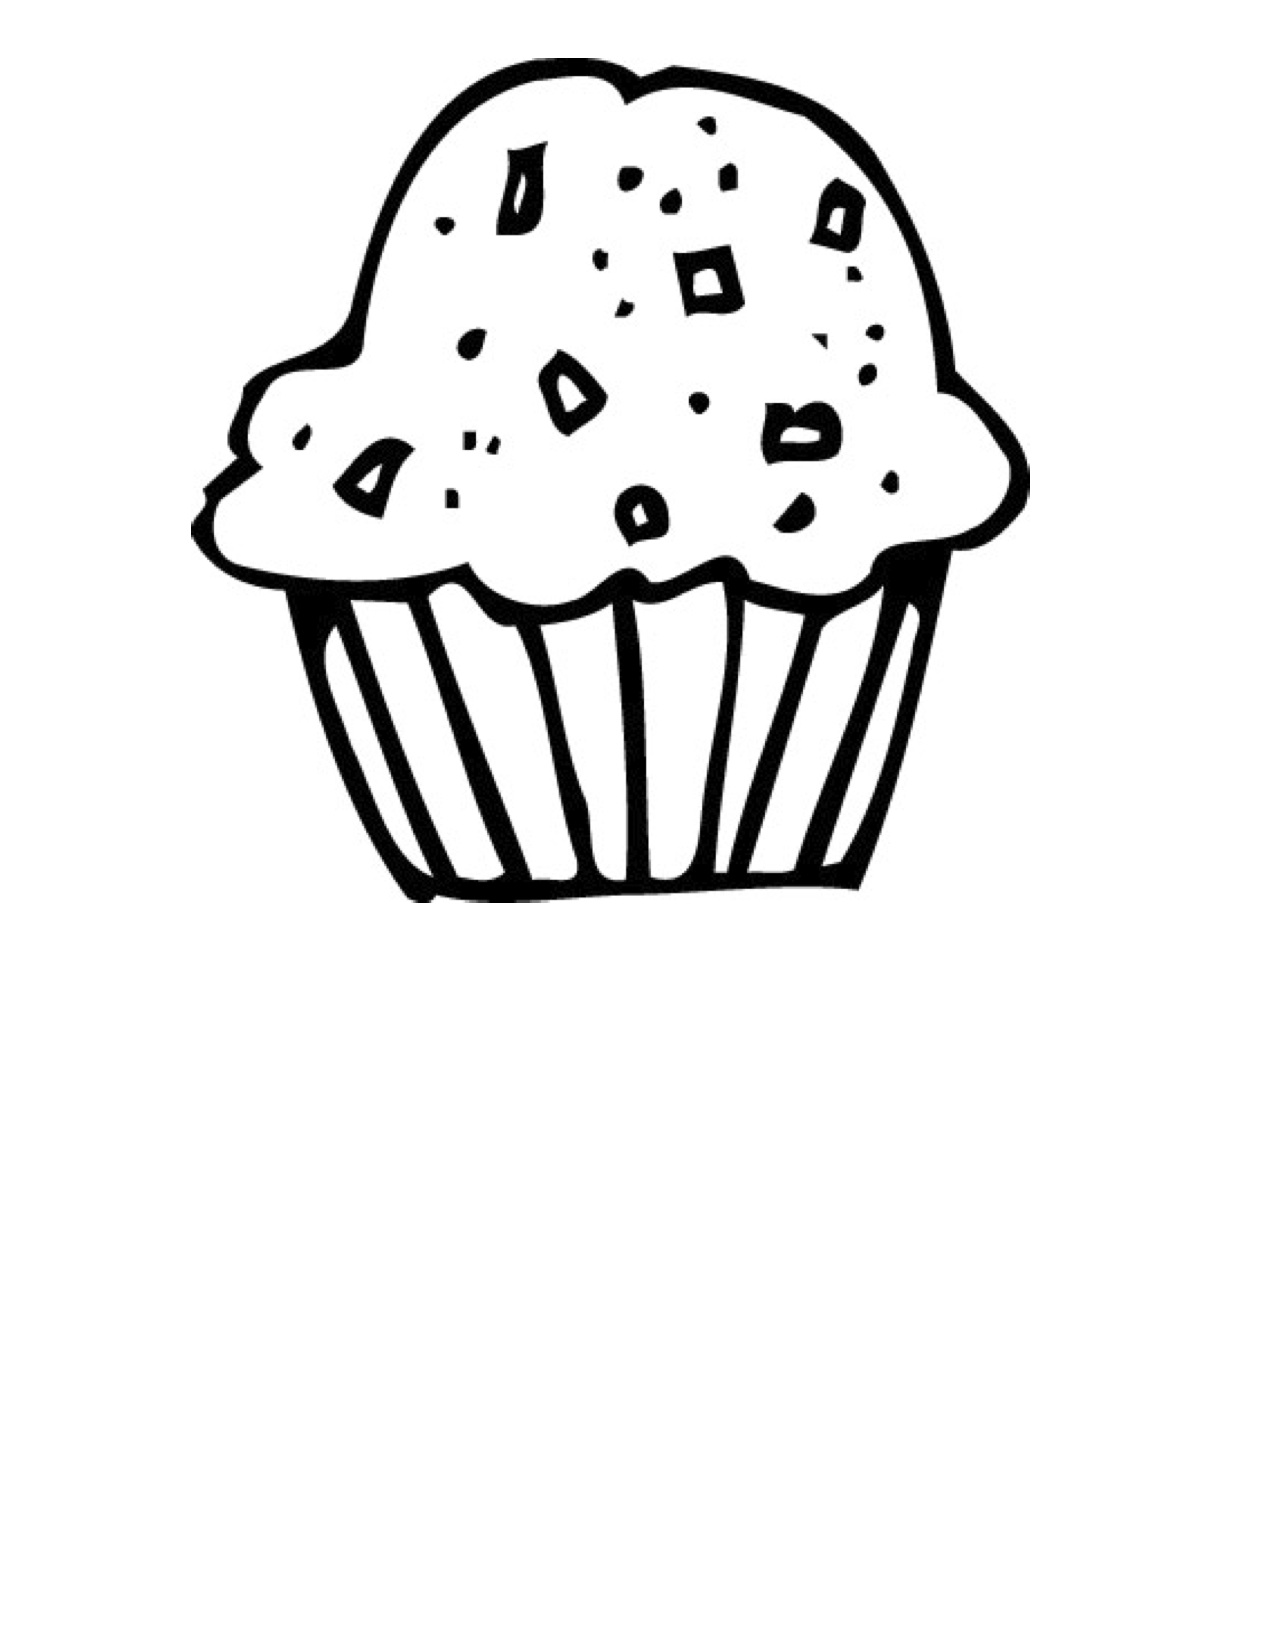 Muffin Clipart Black And White - Gallery